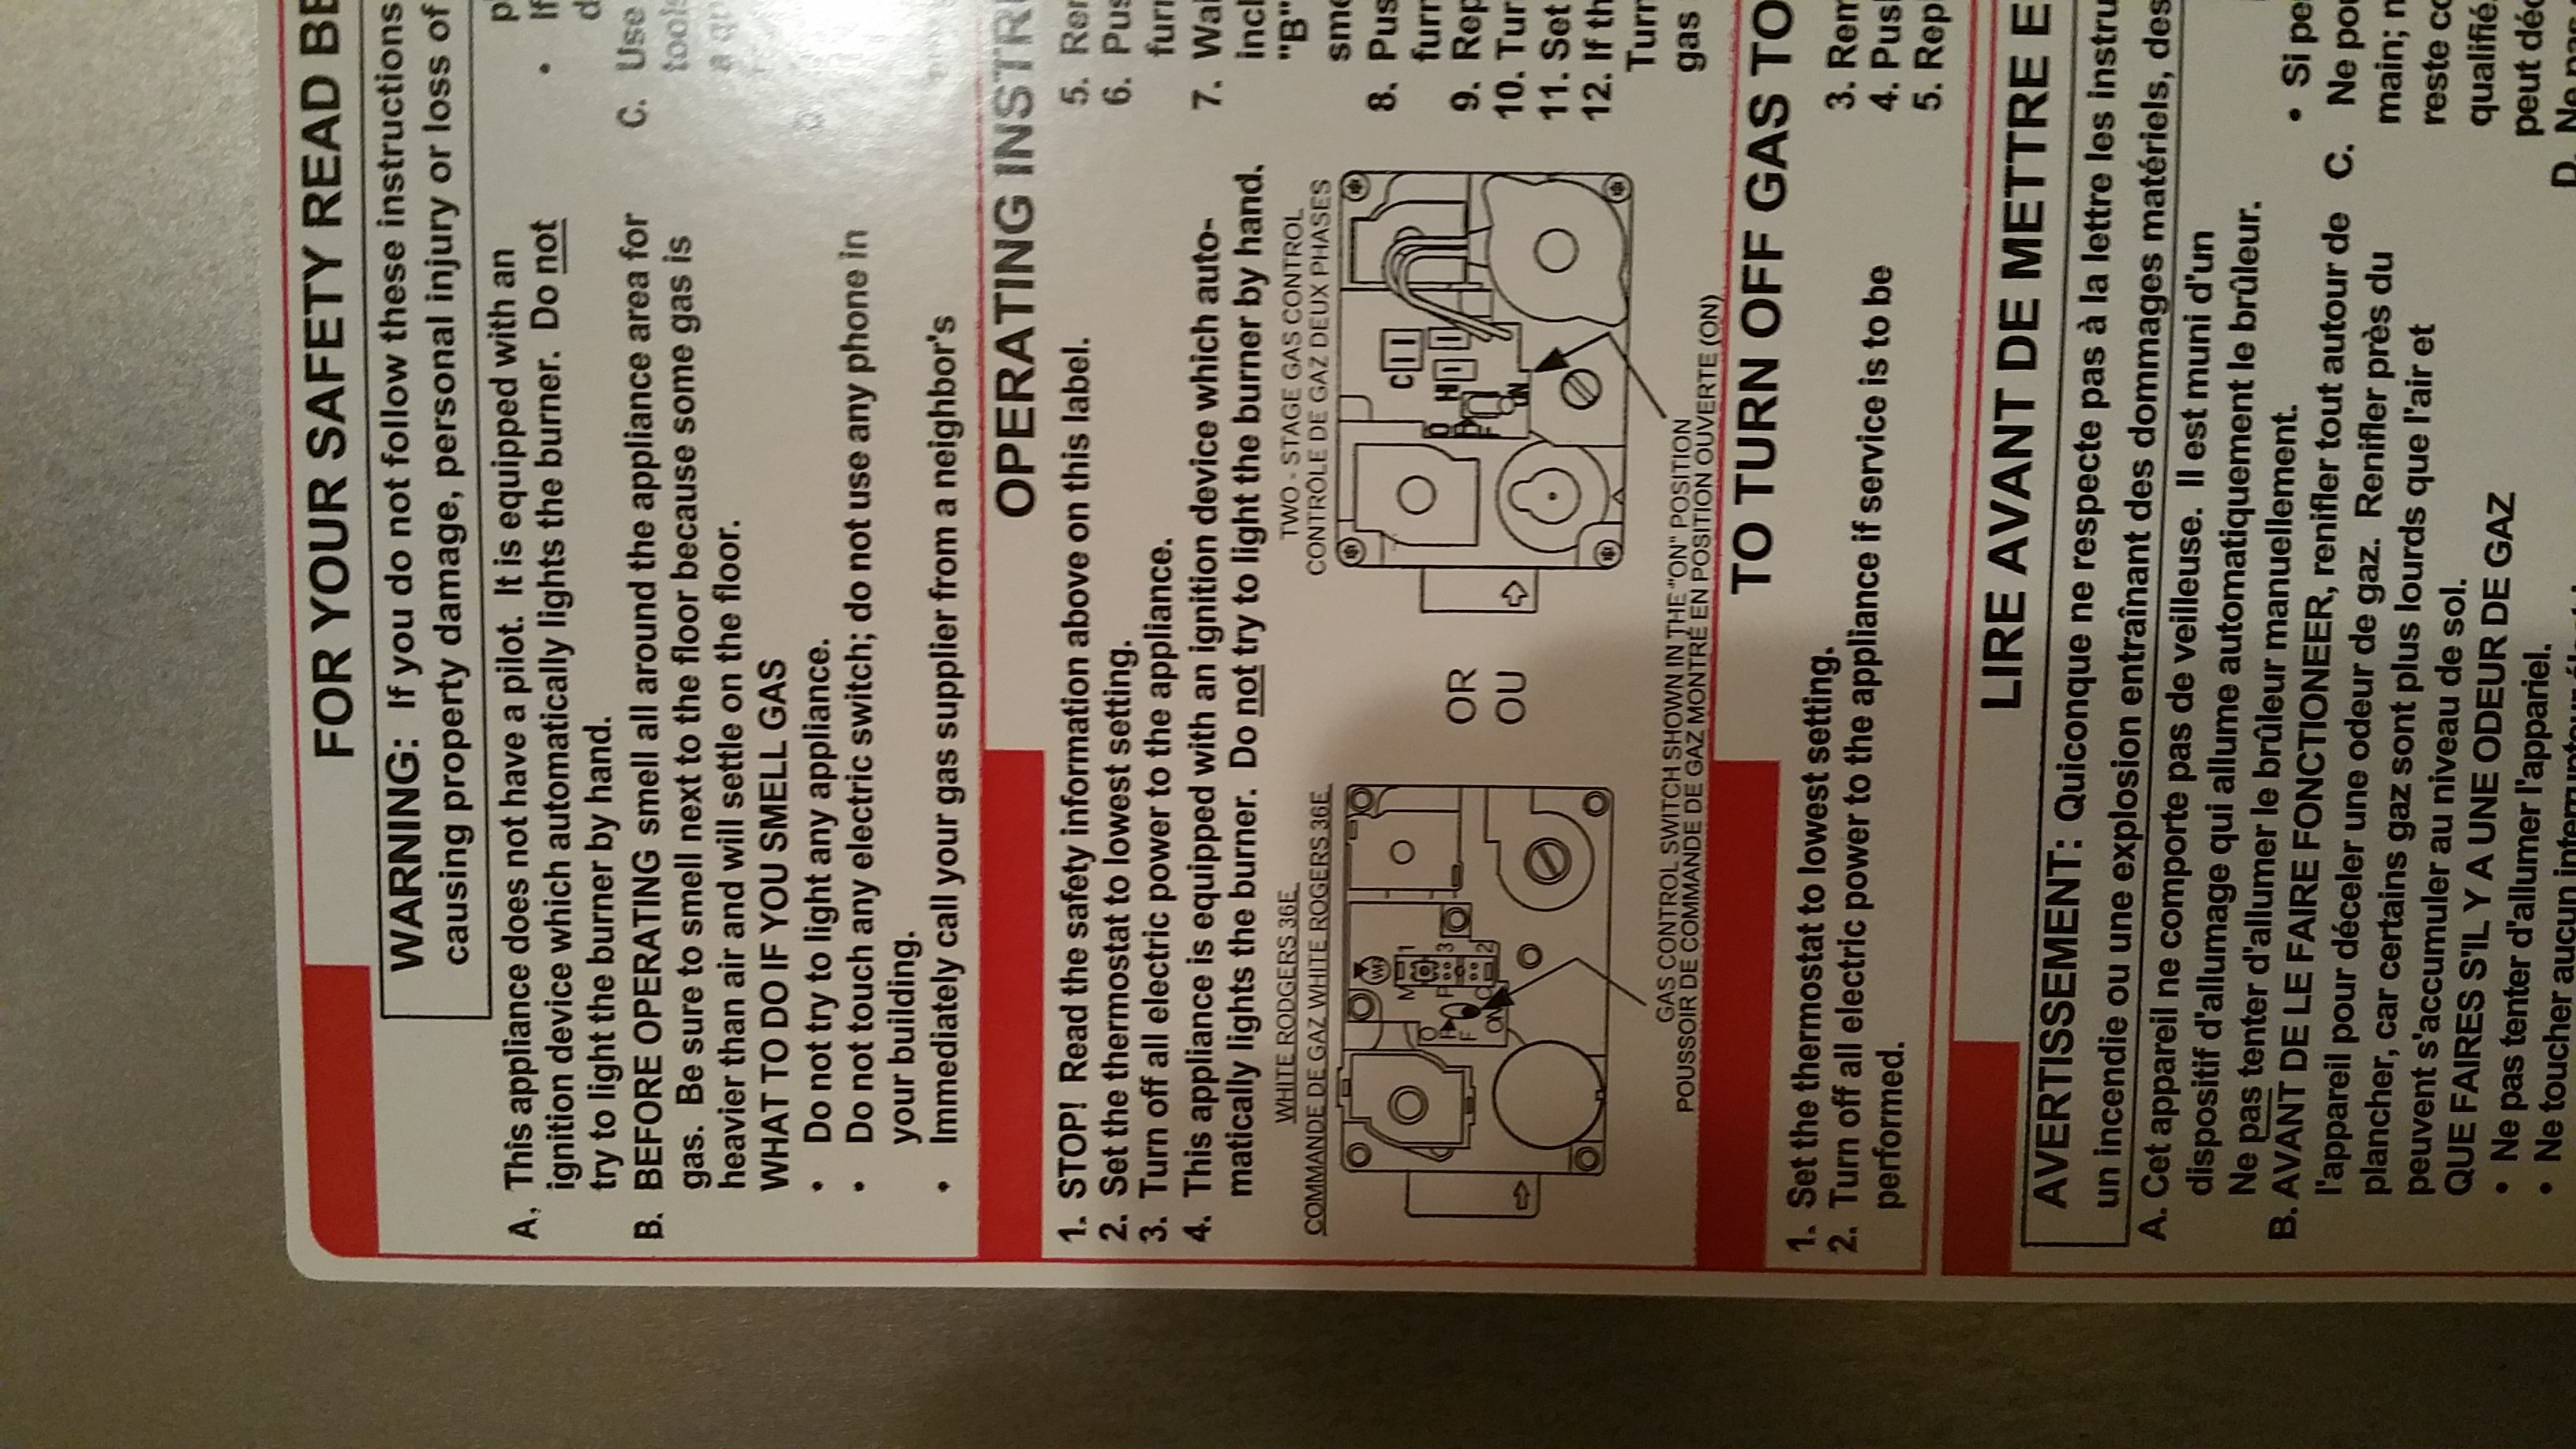 Non battery thermostat wont stay on. when reset it heats up the home on